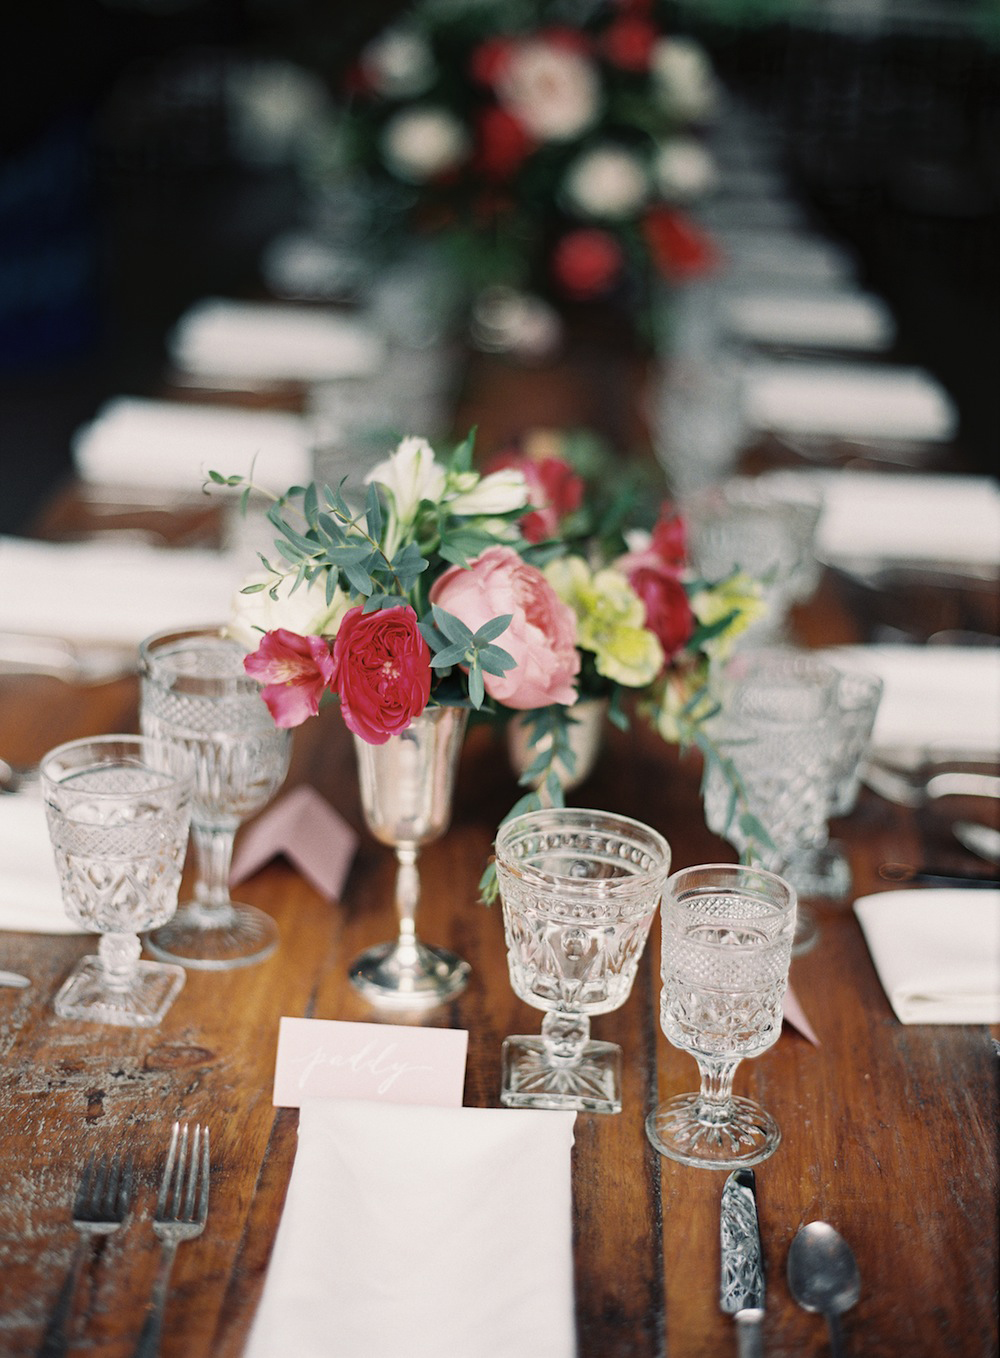 Amazing florals in Southern Vintage silver vessels with our vintage clear pressed wine glasses and water goblets with our silver flatware with beautiful hand lettered place cards equals perfection!